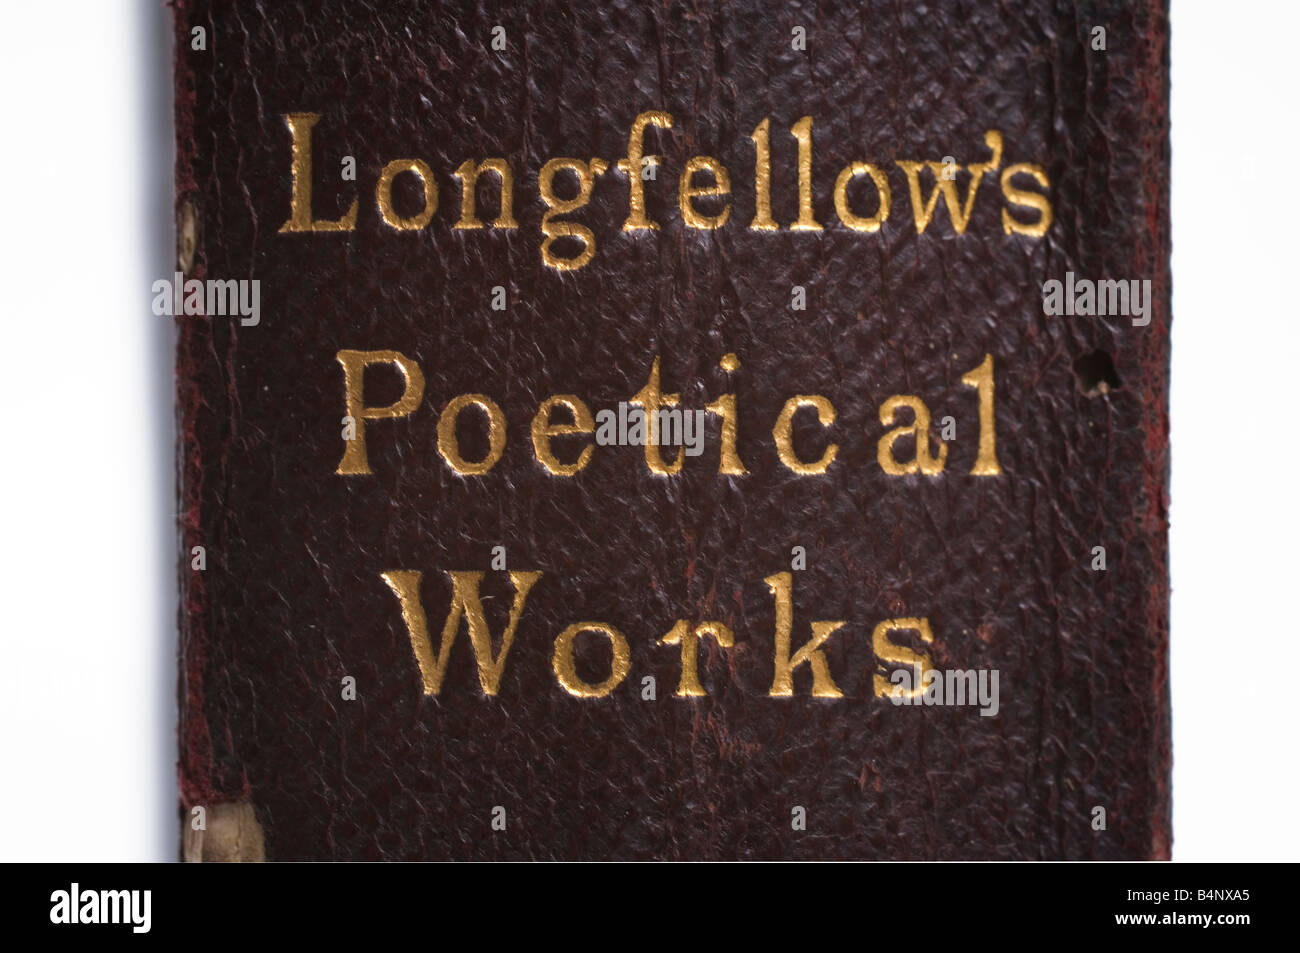 The name of the author Longfellow engraved in gold on the leather binding of an old book of his works - Stock Image